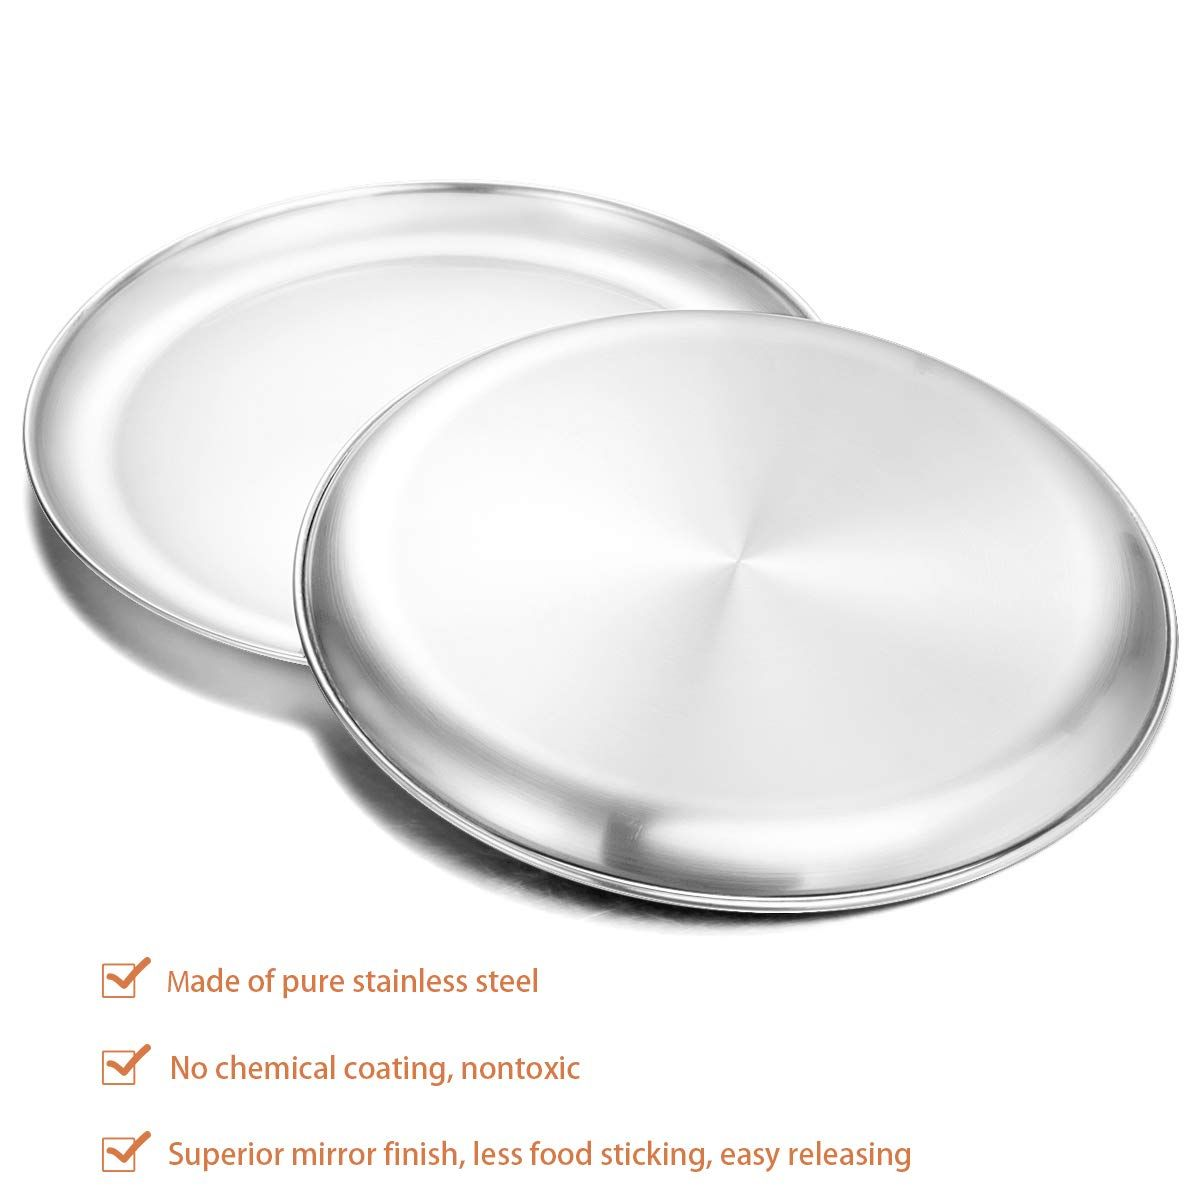 Stainless Steel Pizza 13 39 Inch In 2020 Pizza Pans Pizza Pans